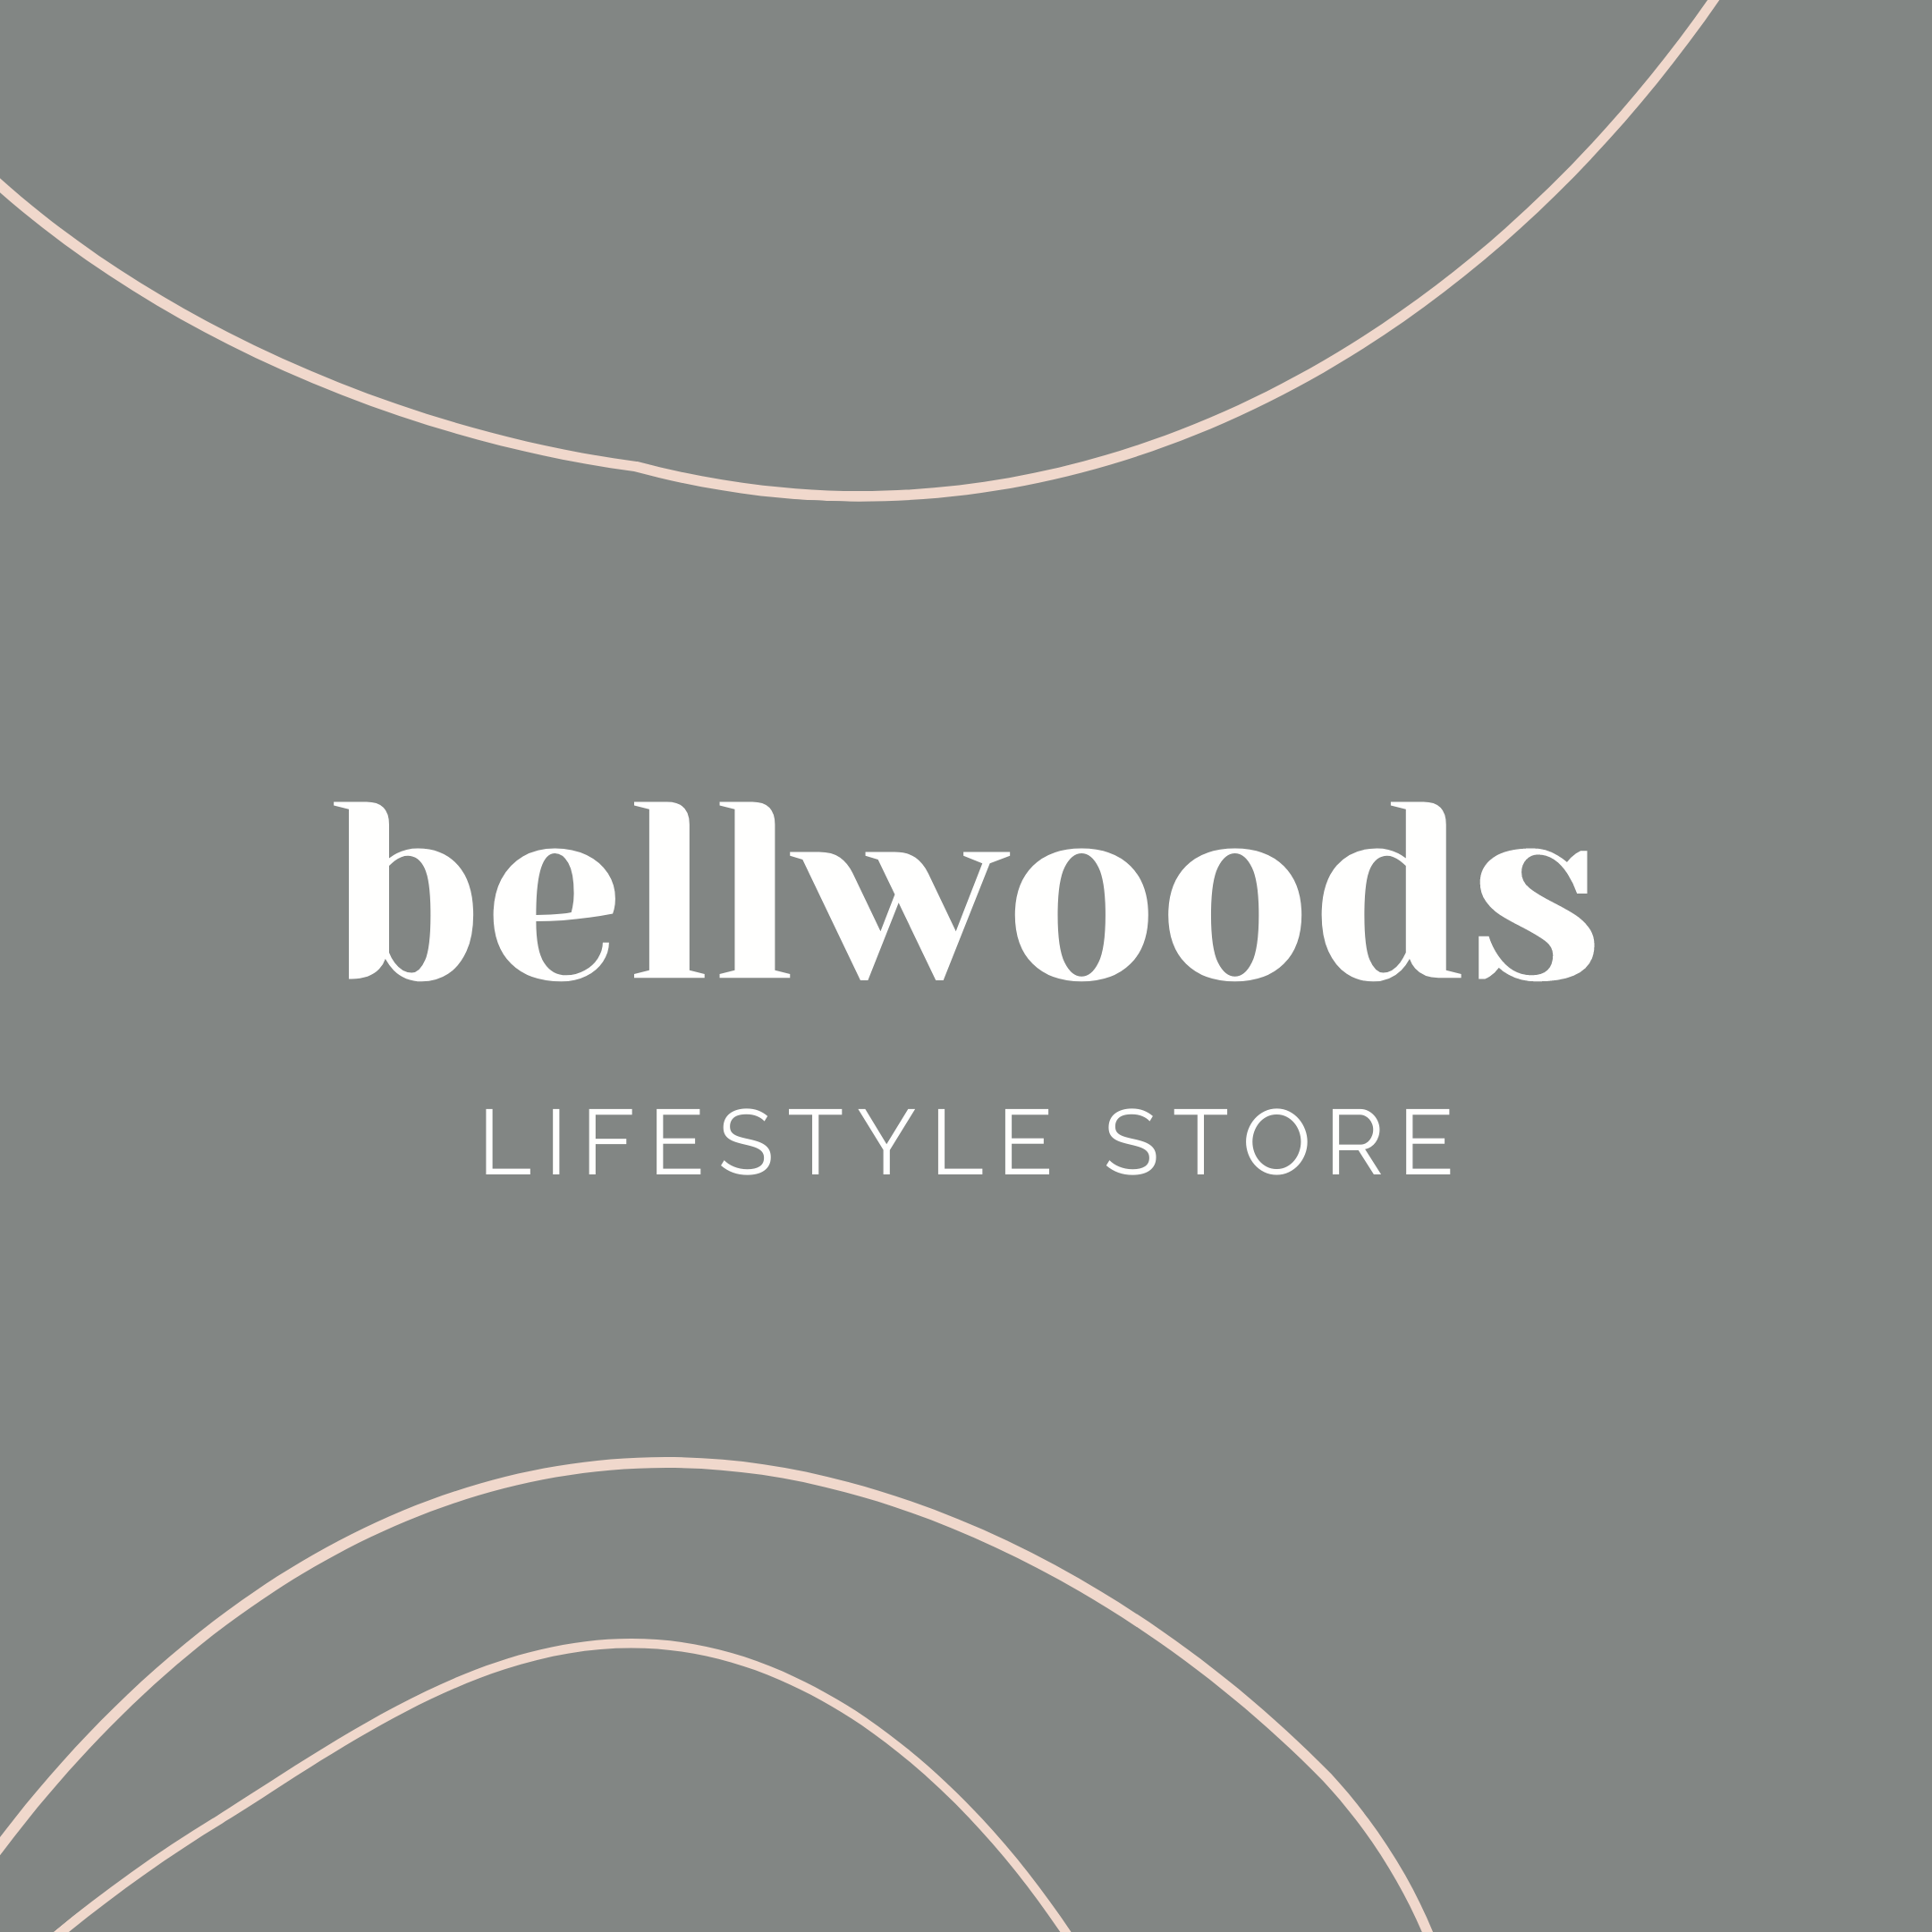 Bellwoods Lifestyle Store Image